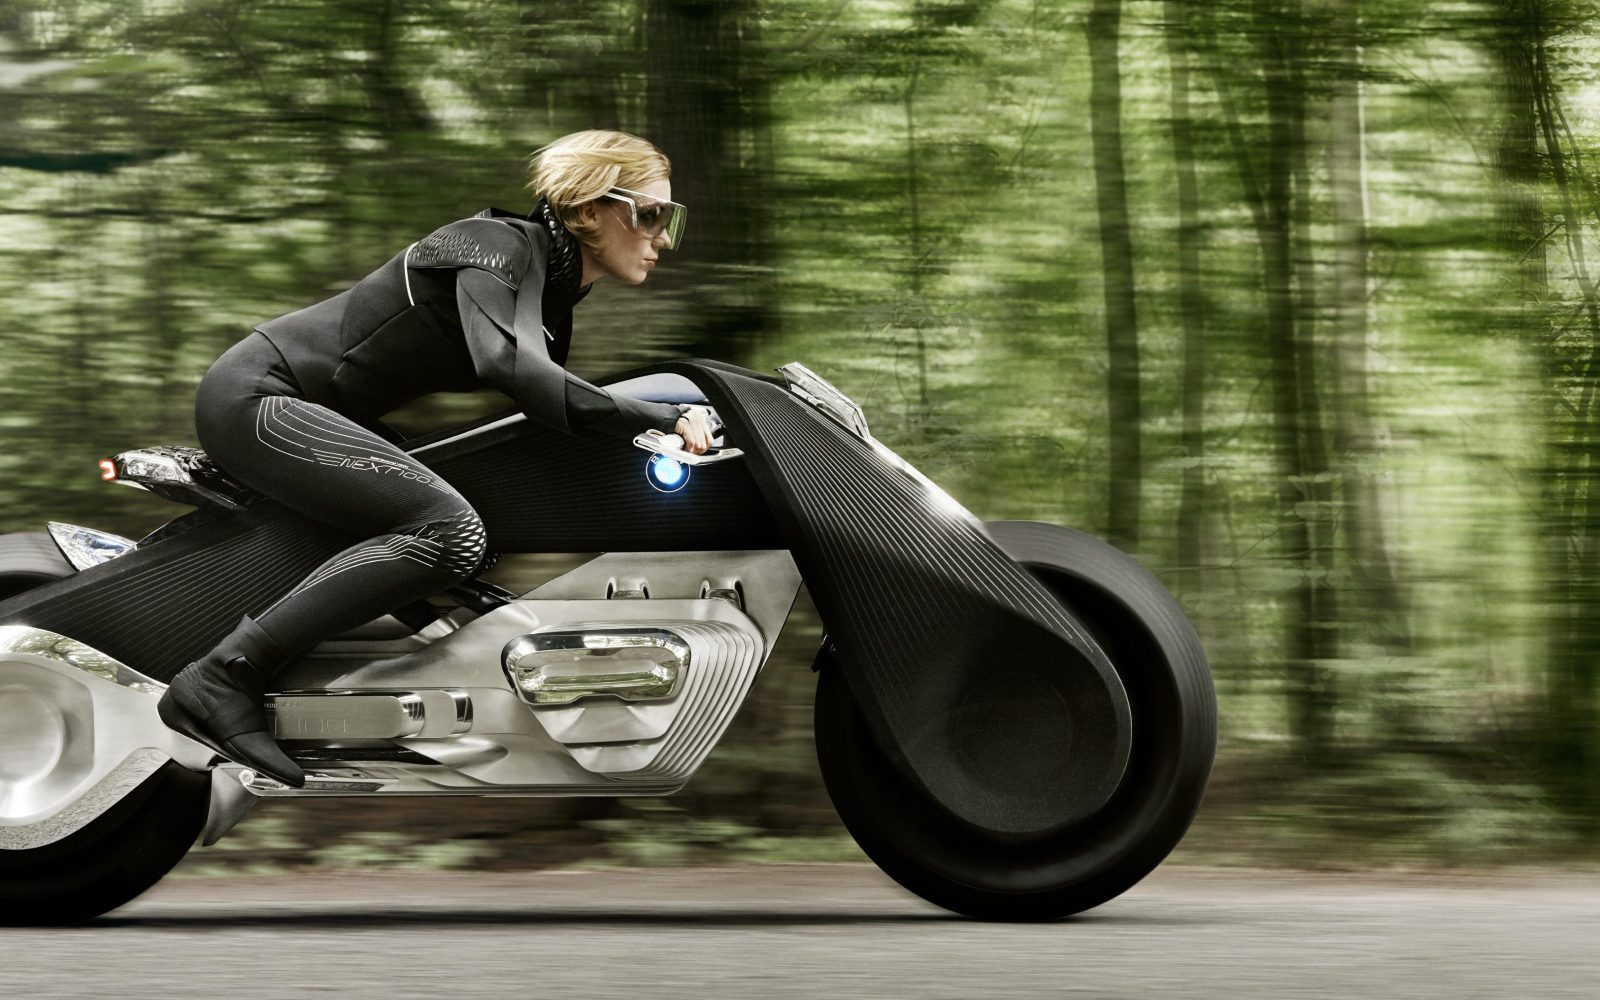 Lit Motors C1 Price >> BMW unveils new self-balancing electric motorcycle concept amid rumored talks with Lit Motors ...